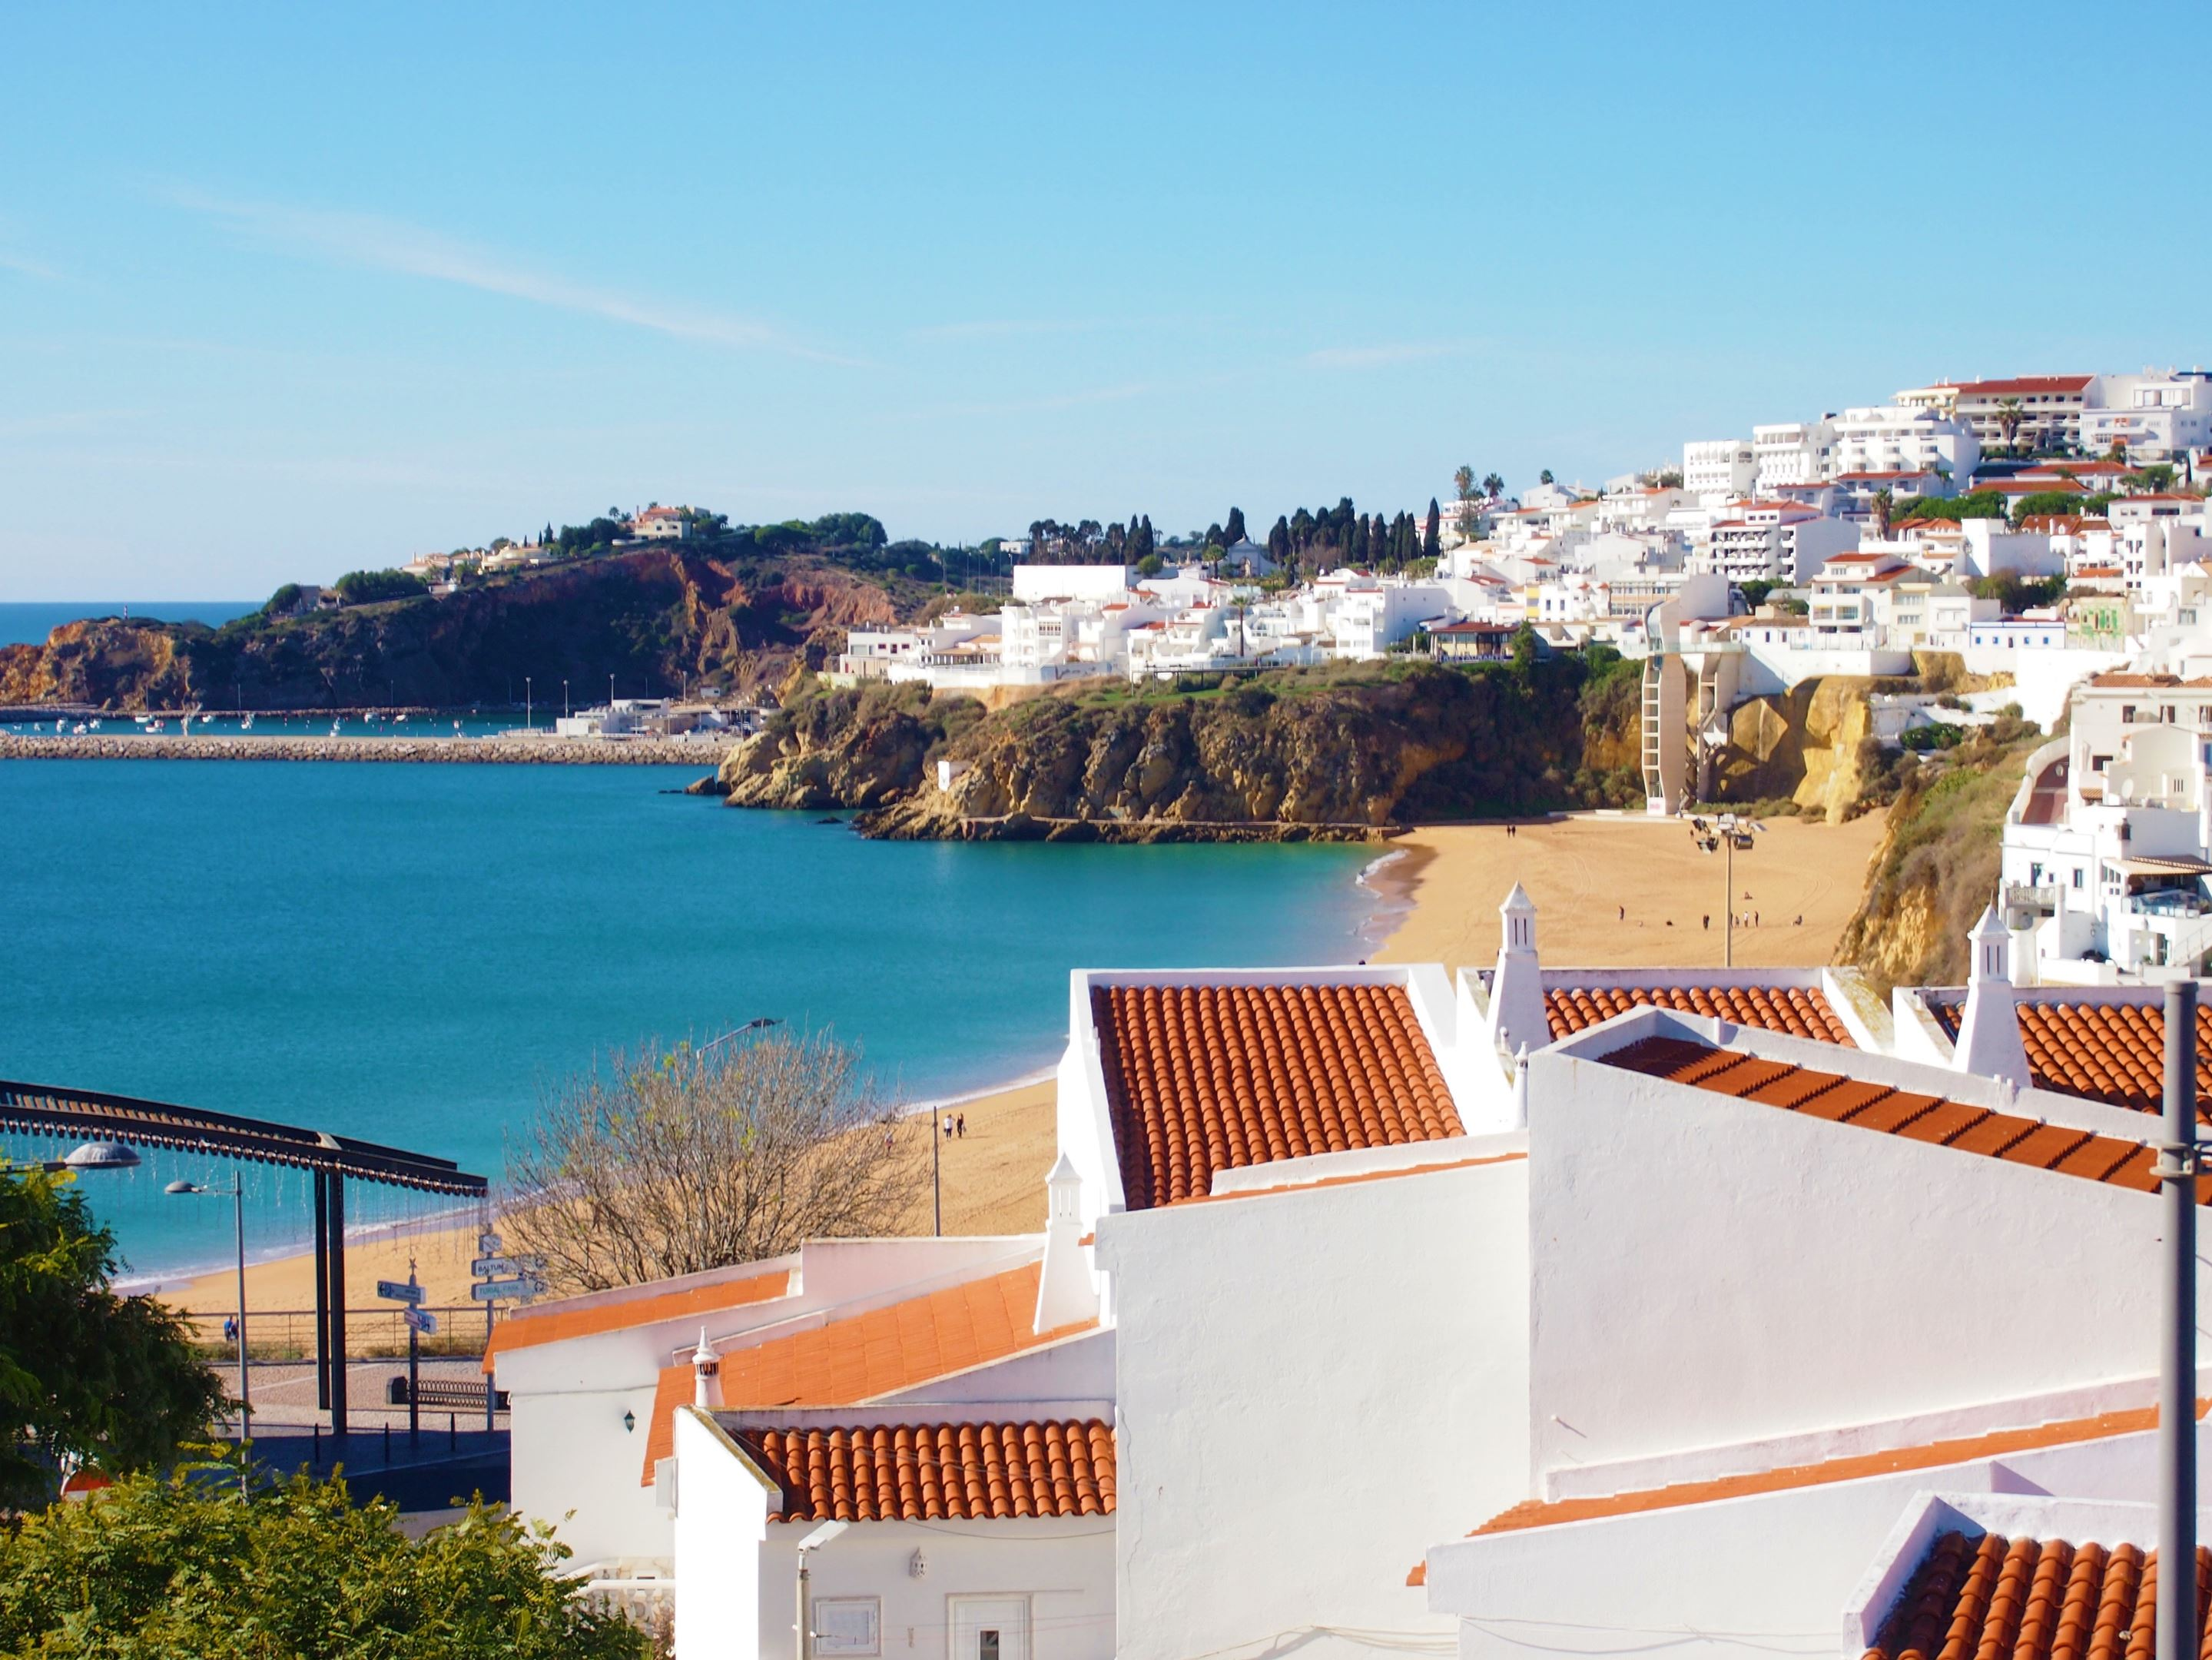 Praia dos Pescadores beach and the whitewashed houses of the Old Town, Albufeira.